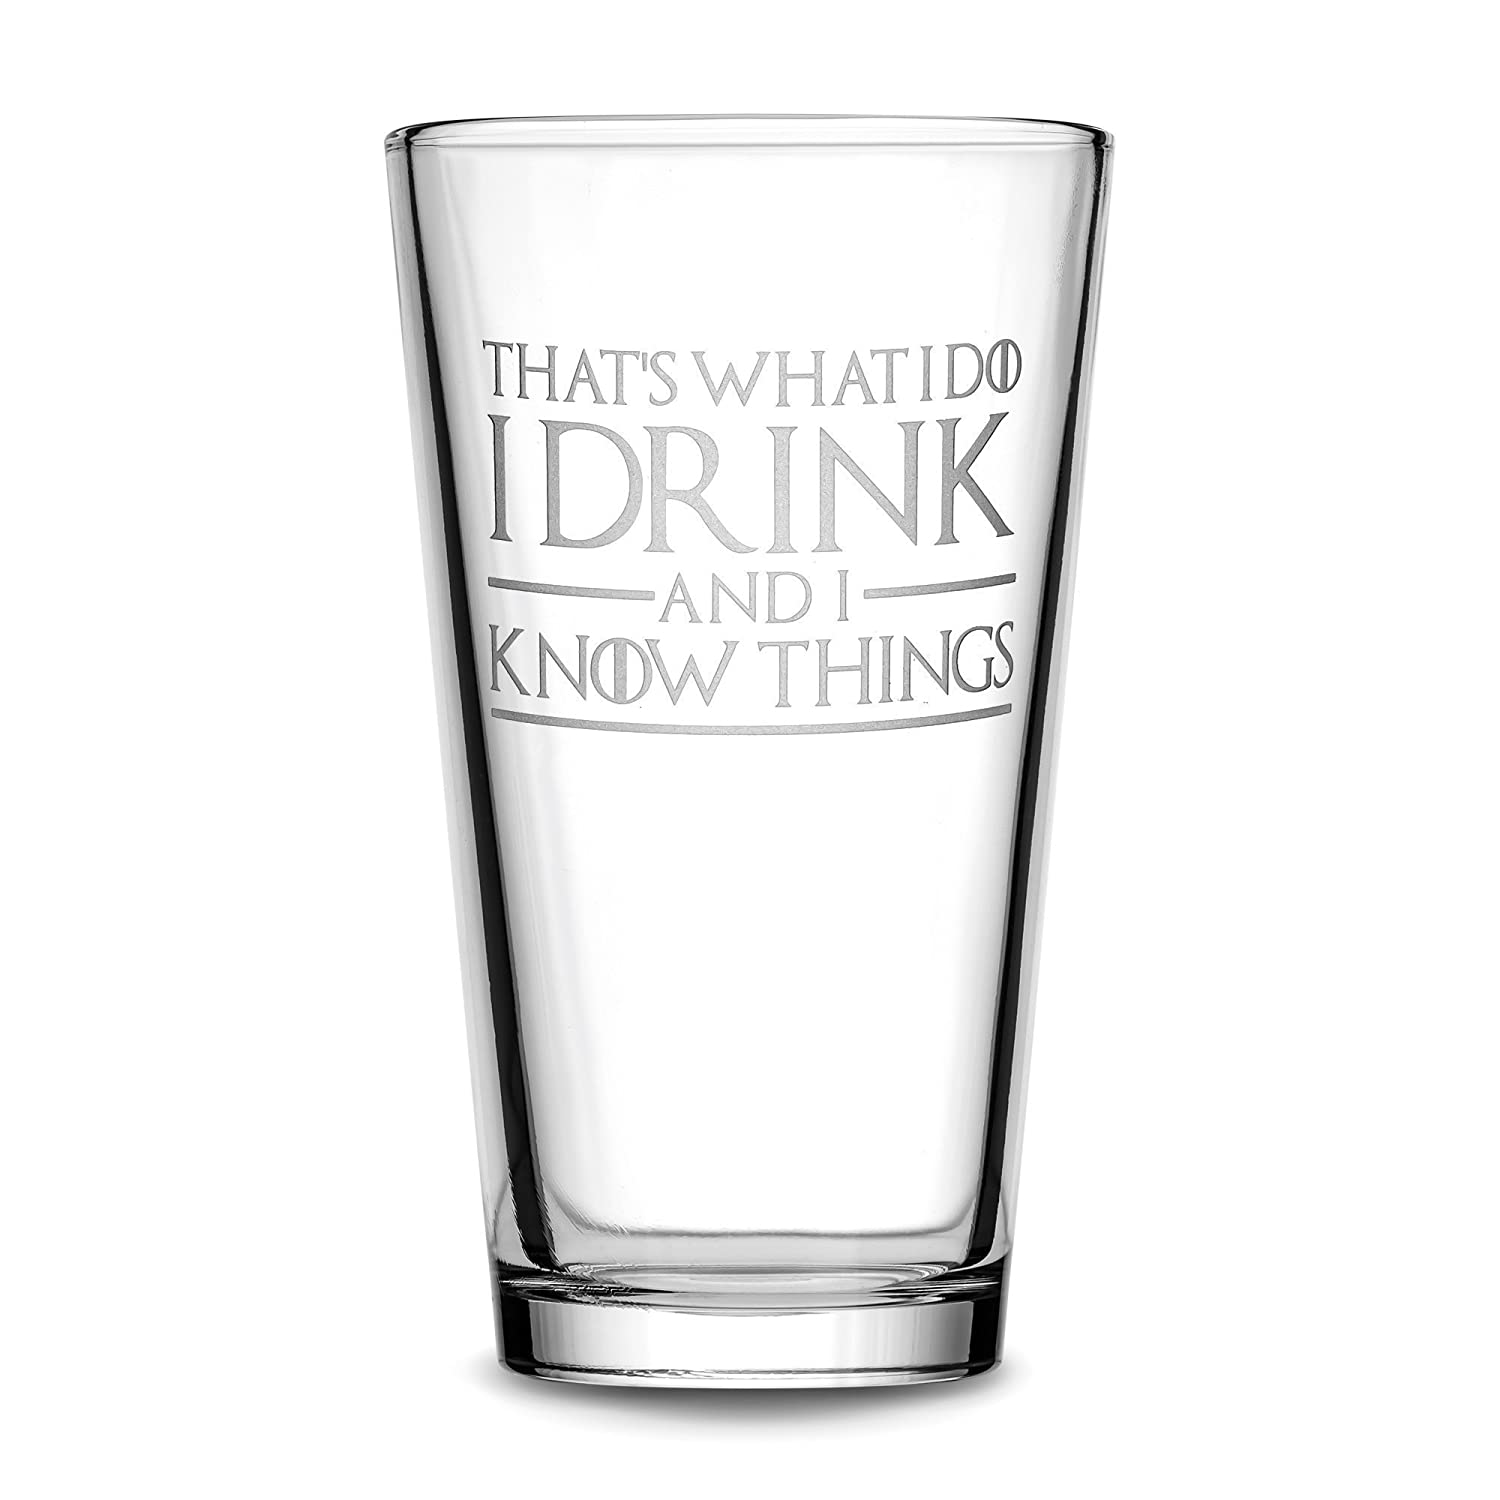 Integrity Bottles Premium Game of Thrones Pint Glass, That's What I Do I Drink and I Know Things, Hand Etched 15.3 oz Beer Glass Made in USA, Beer Glass, Mixing Gifts, Sand Carved